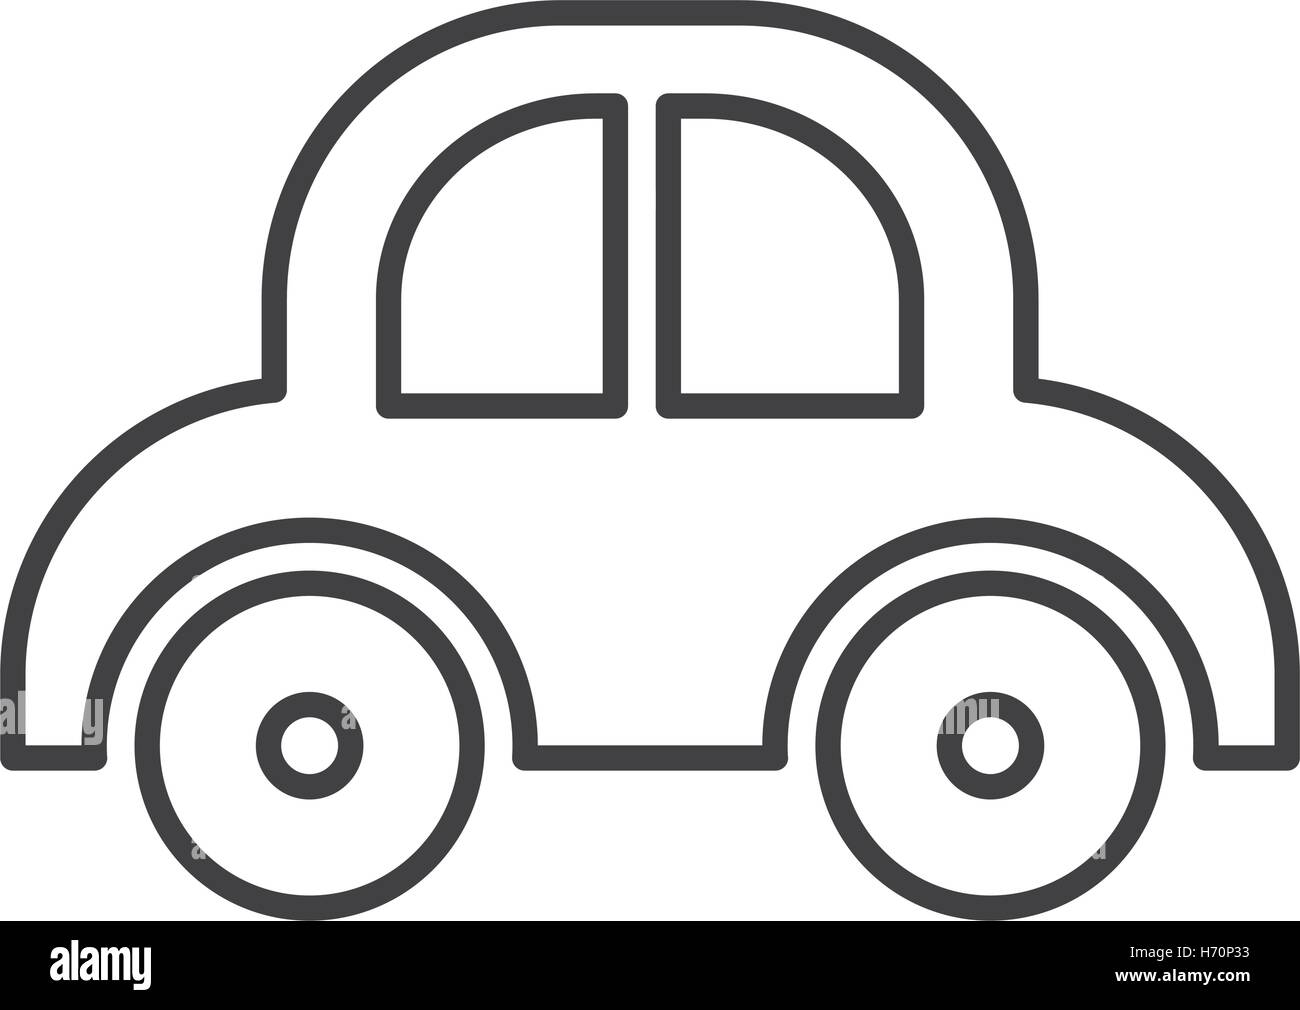 Miniature Car Stock Vector Images - Alamy on